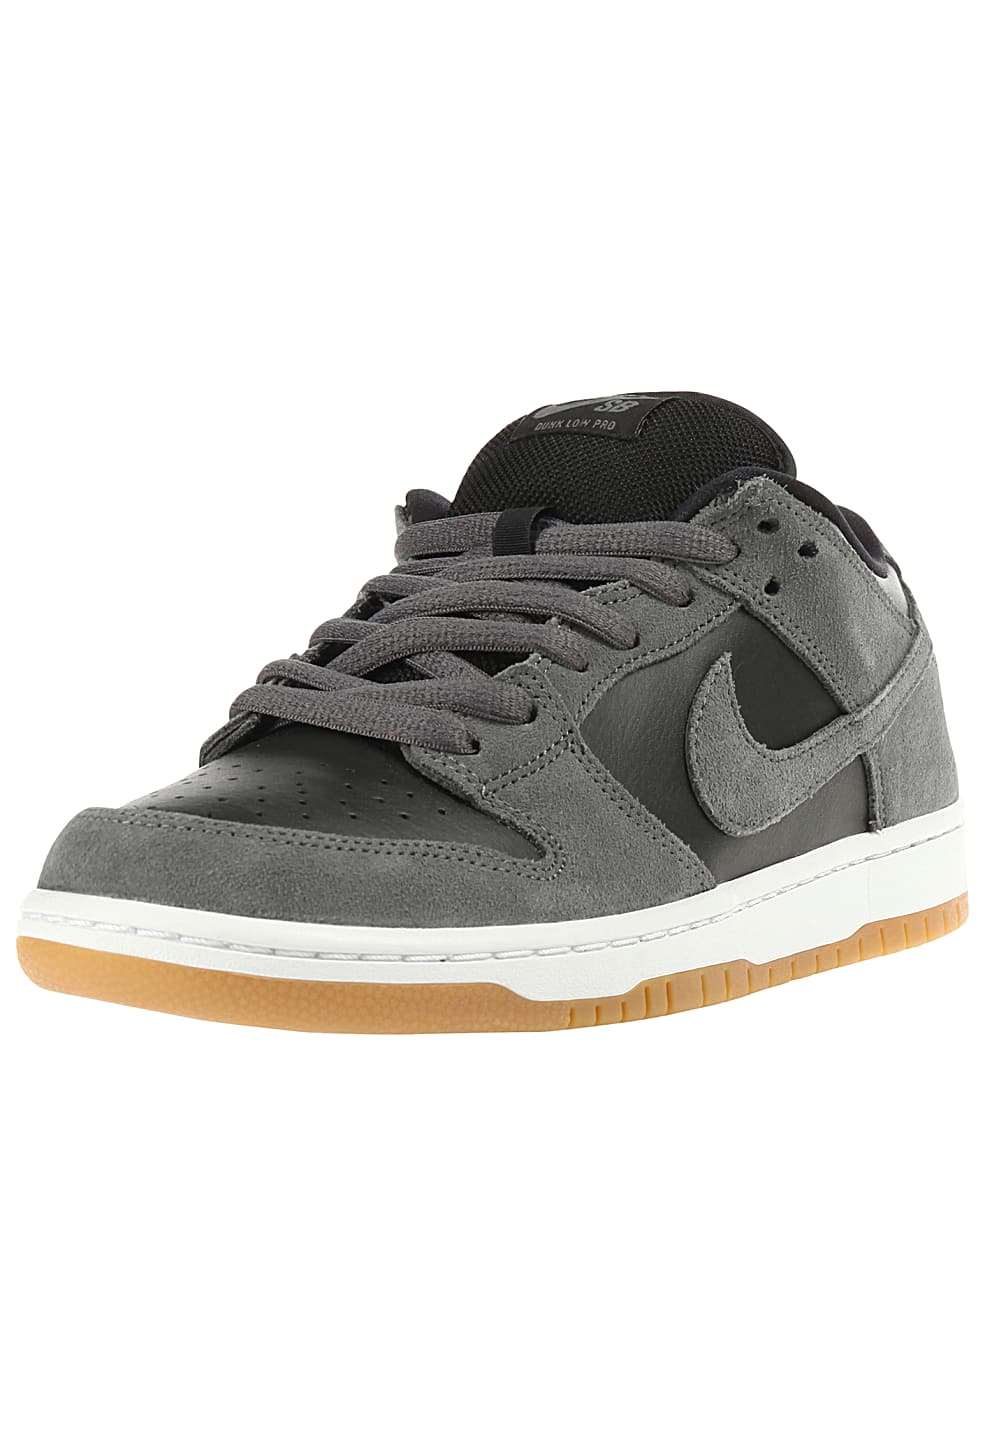 sports shoes 149d5 e43d3 NIKE SB Dunk Low Trd - Sneakers for Men - Grey